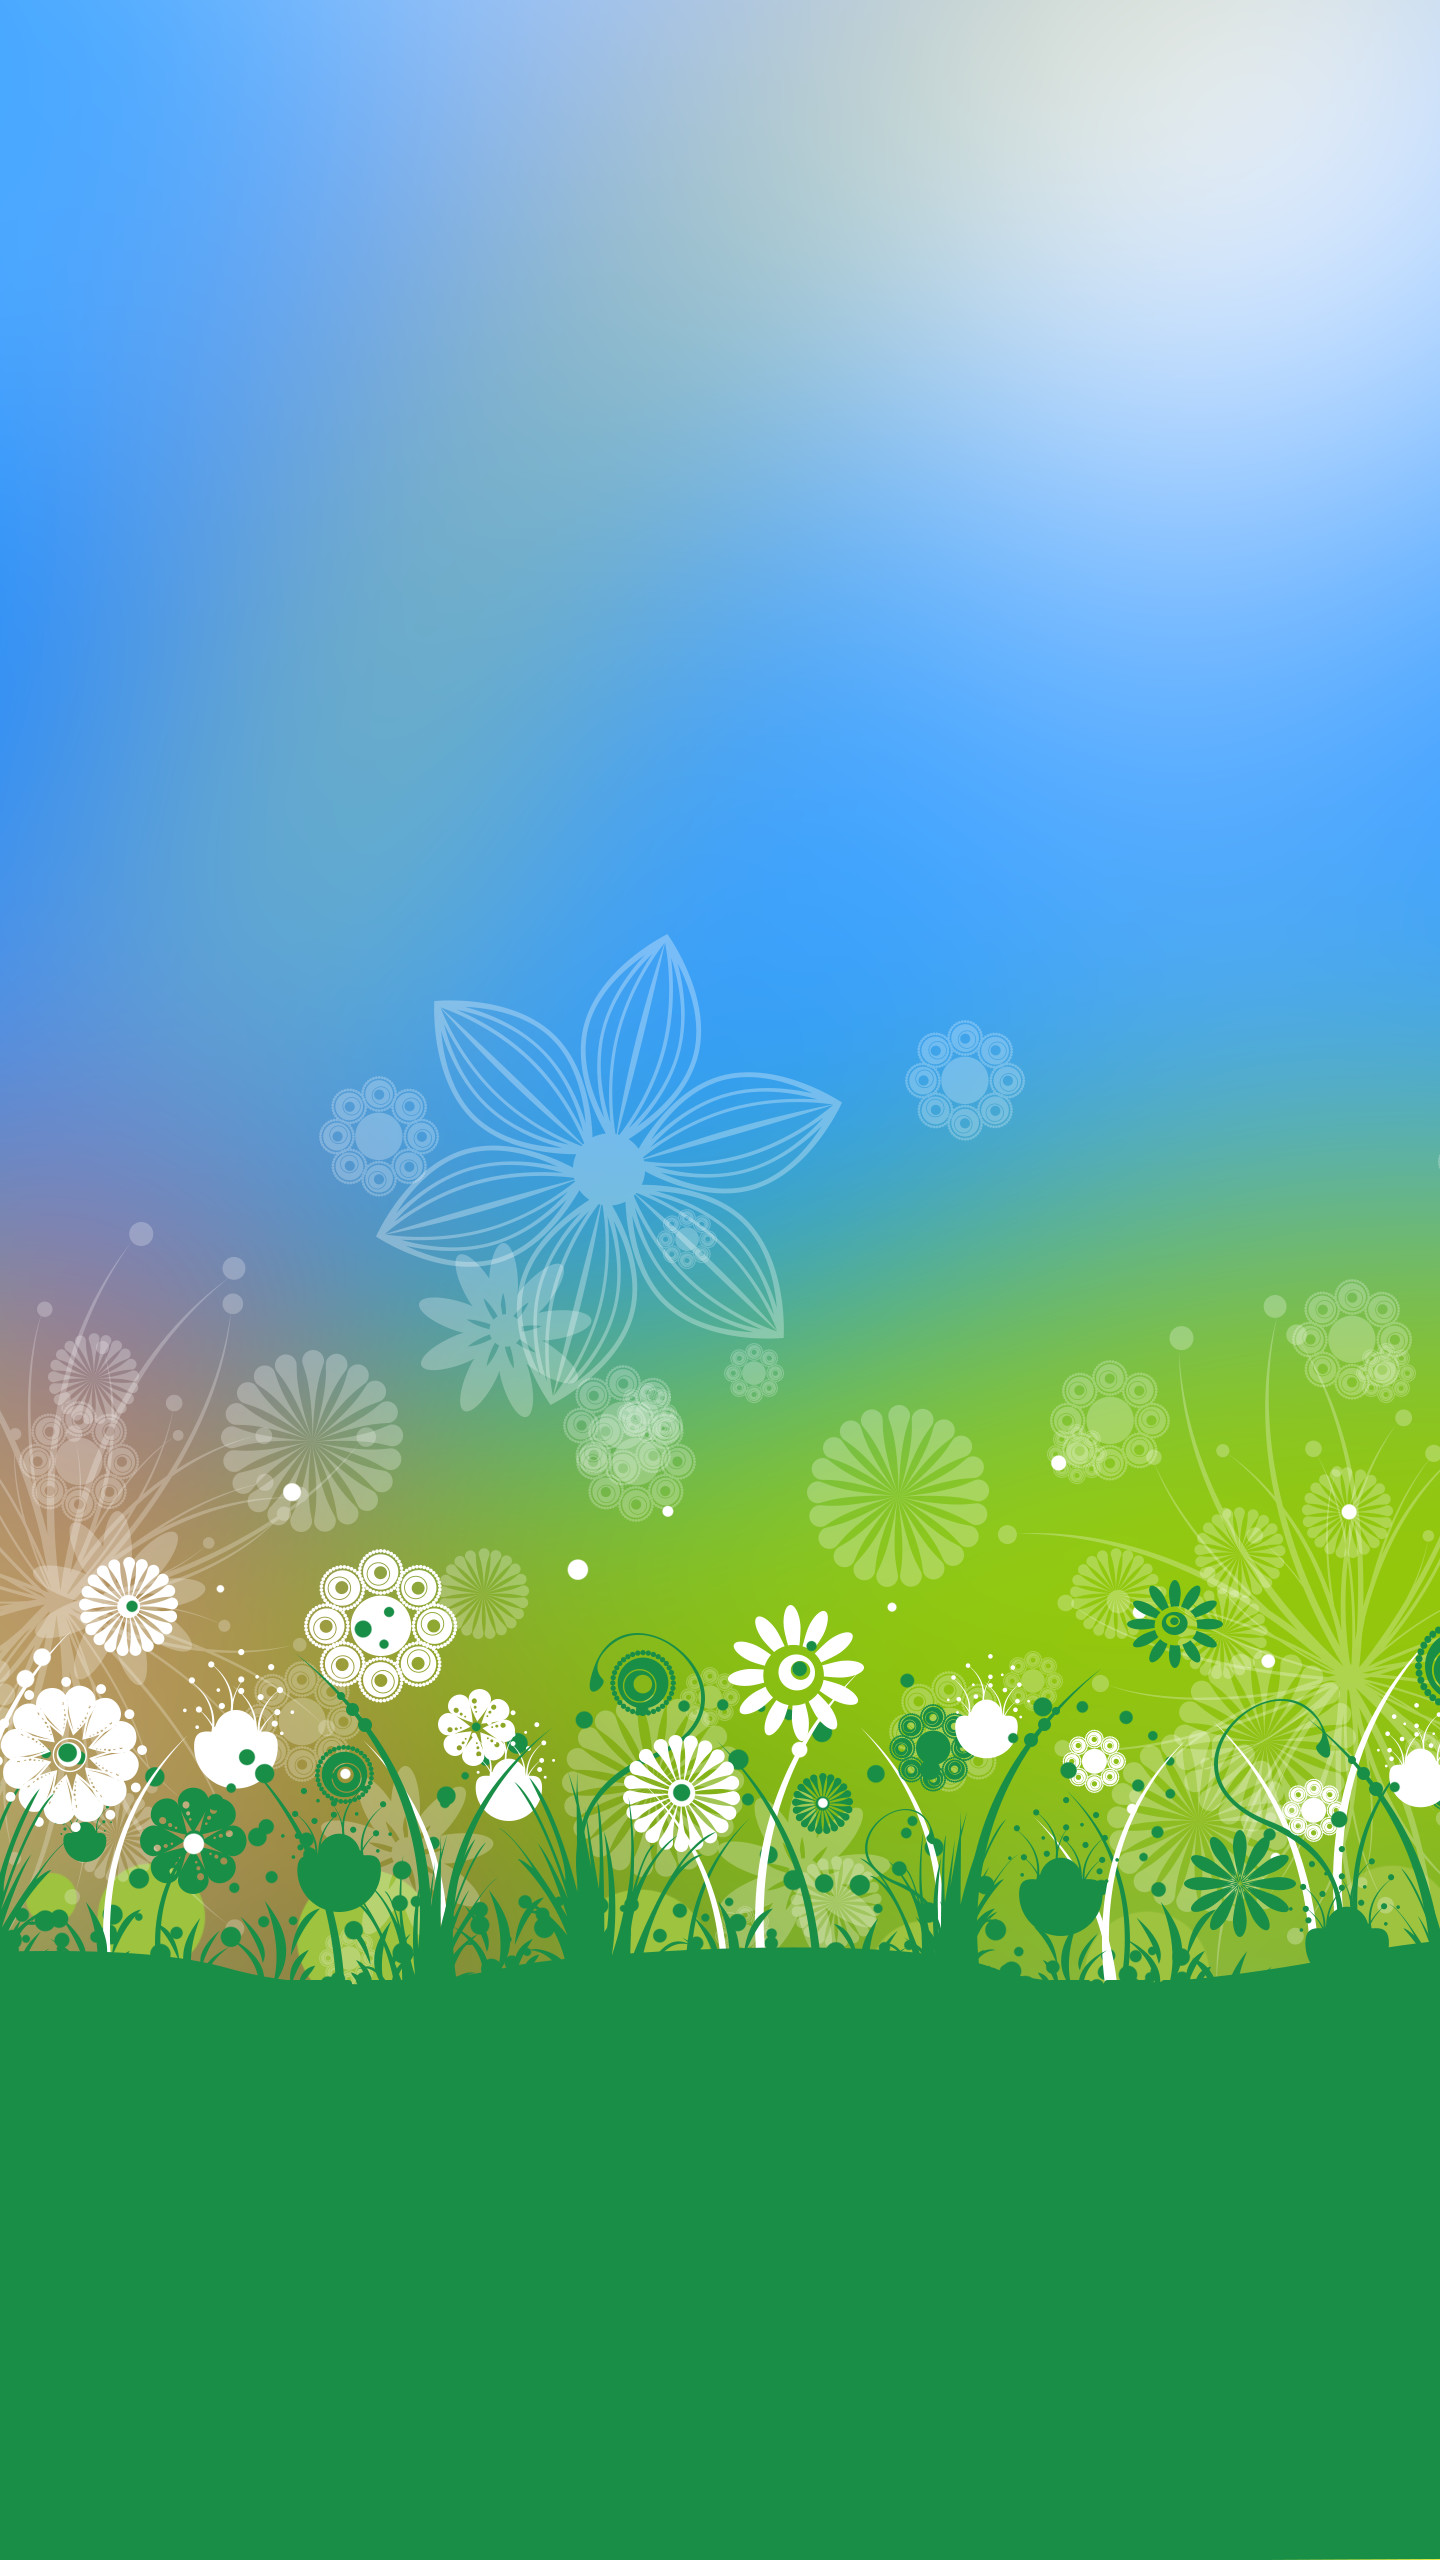 Green and white spring flowers Wallpaper